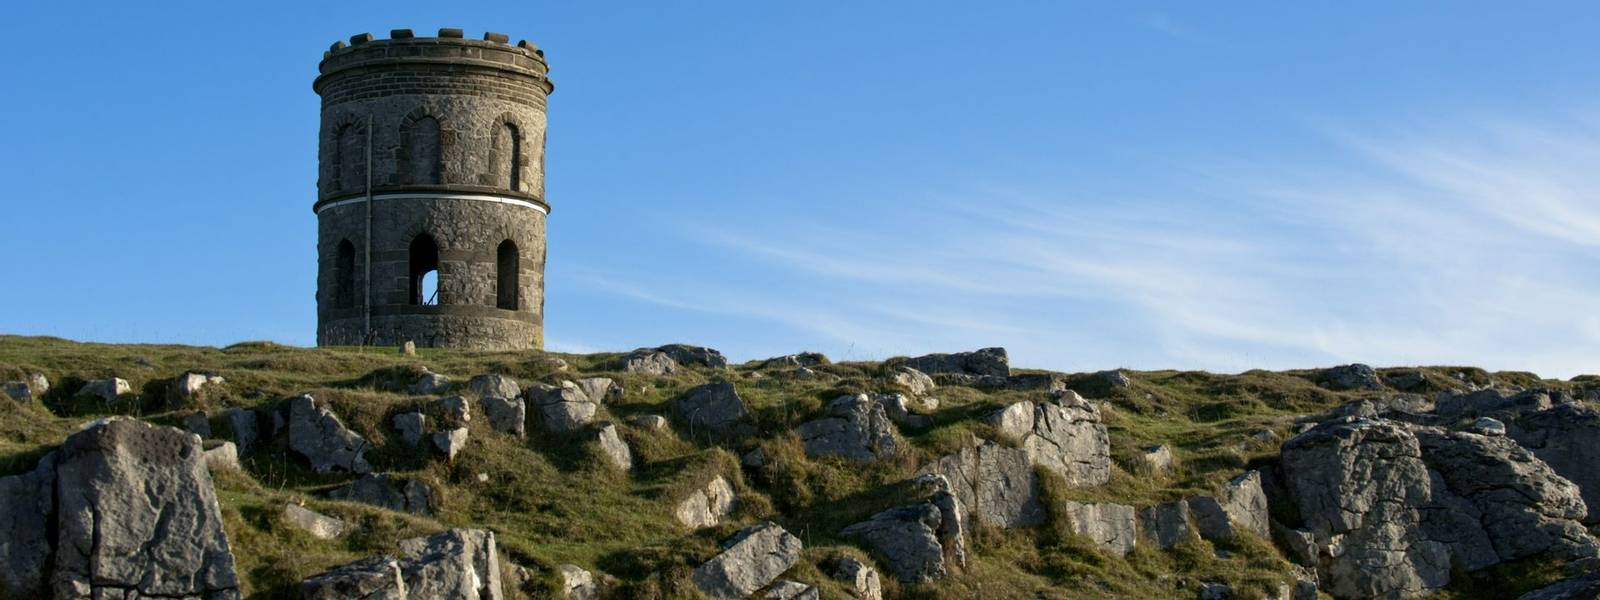 Dovedale - Solomans Tower, Buxton - AdobeStock_150675706.jpeg